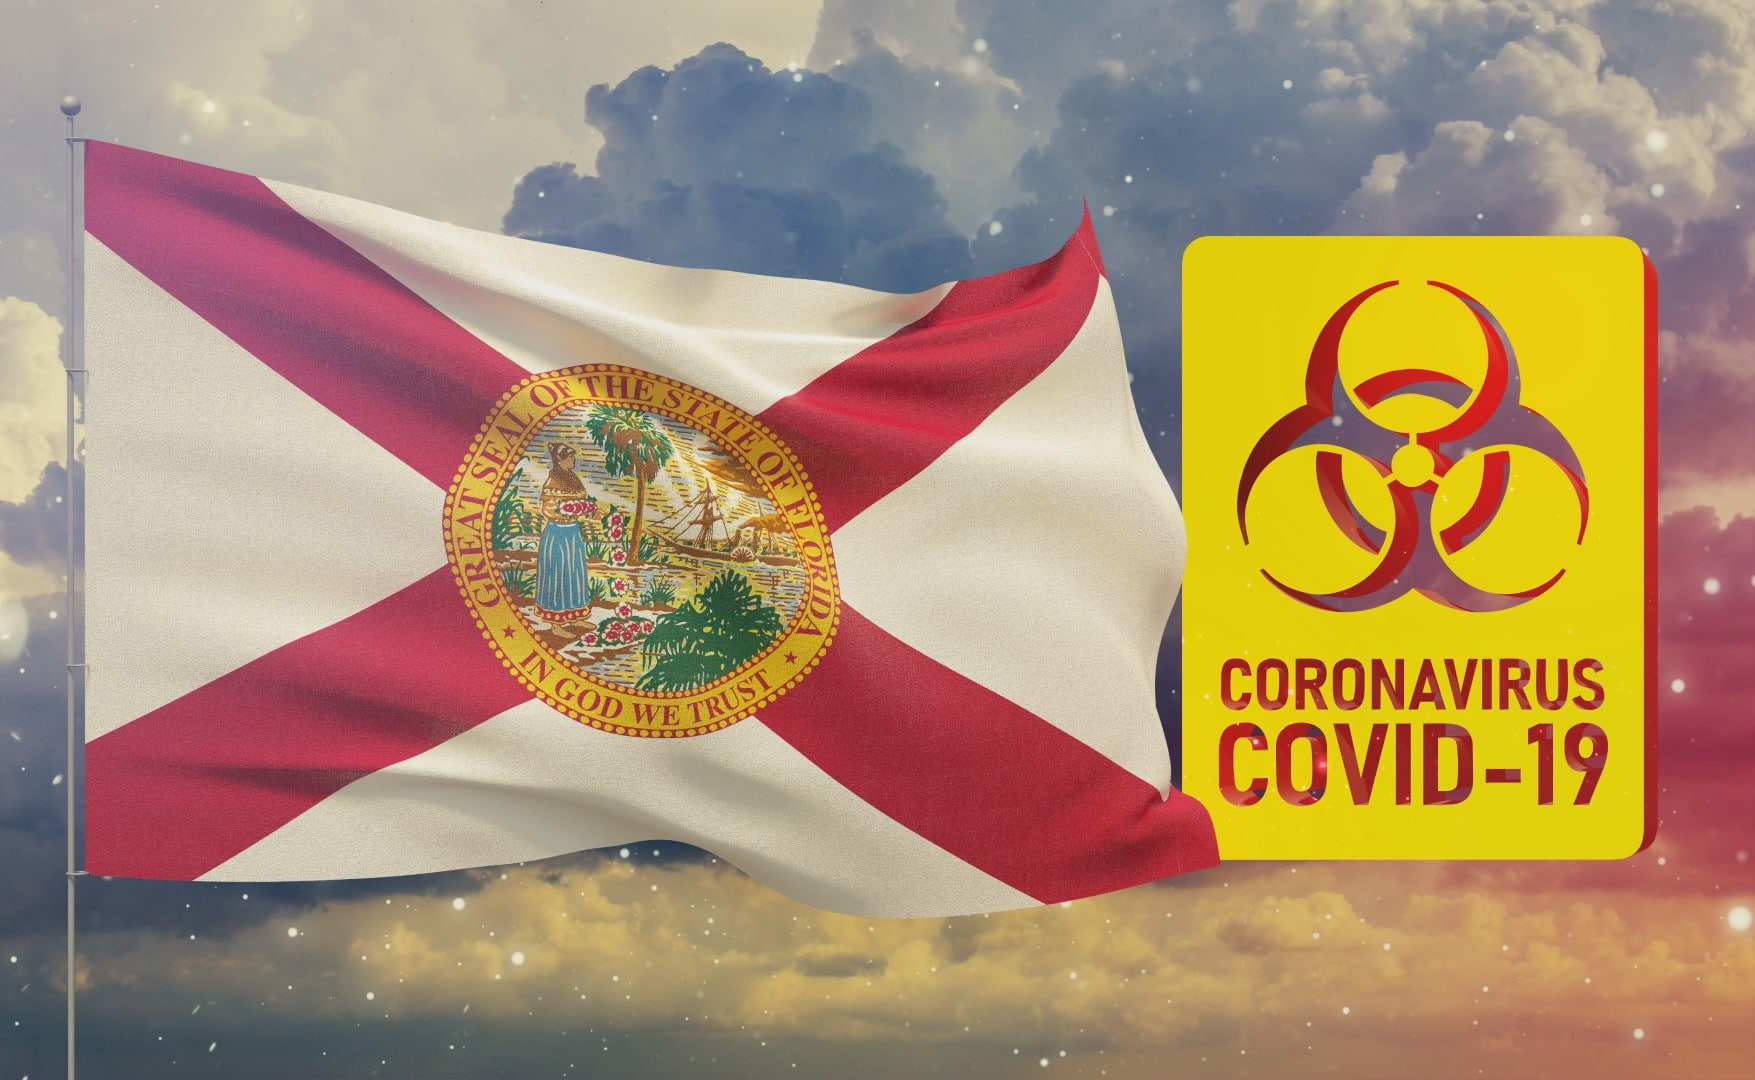 COVID-19 Visual concept - Coronavirus COVID-19 biohazard sign with flags of the states of USA. State of Florida flag. Pandemic stop Novel Coronavirus outbreak covid-19 3D illustration.